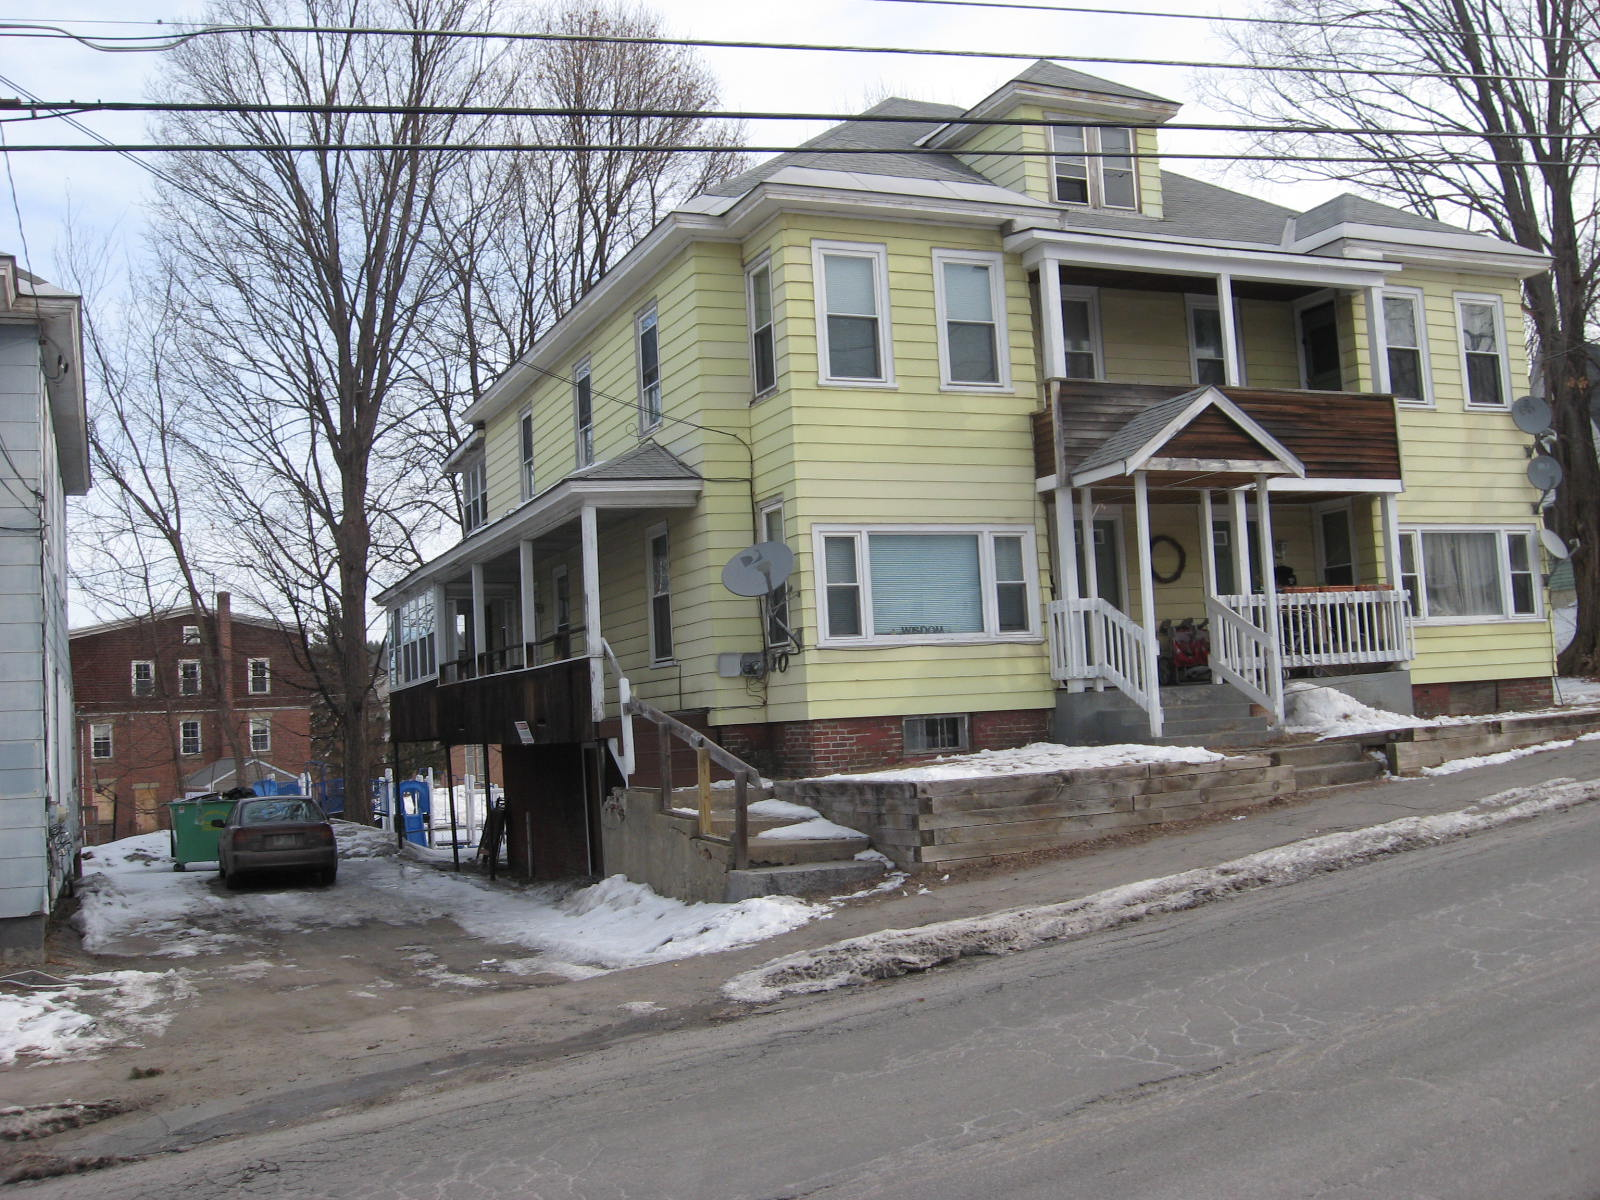 55 SULLIVAN STREET, Claremont, New Hampshire 03743